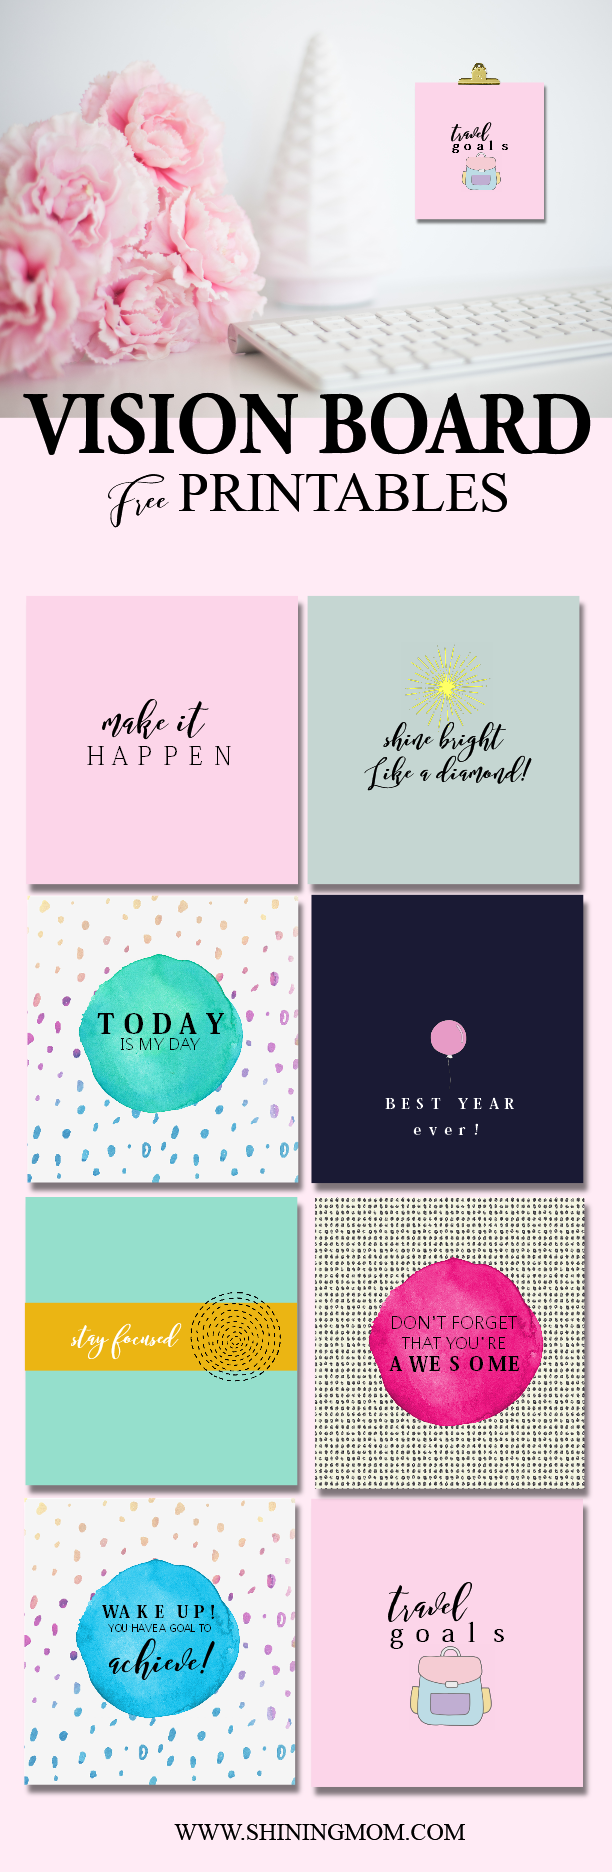 Vision board templates free image collections template for Vision board templates free